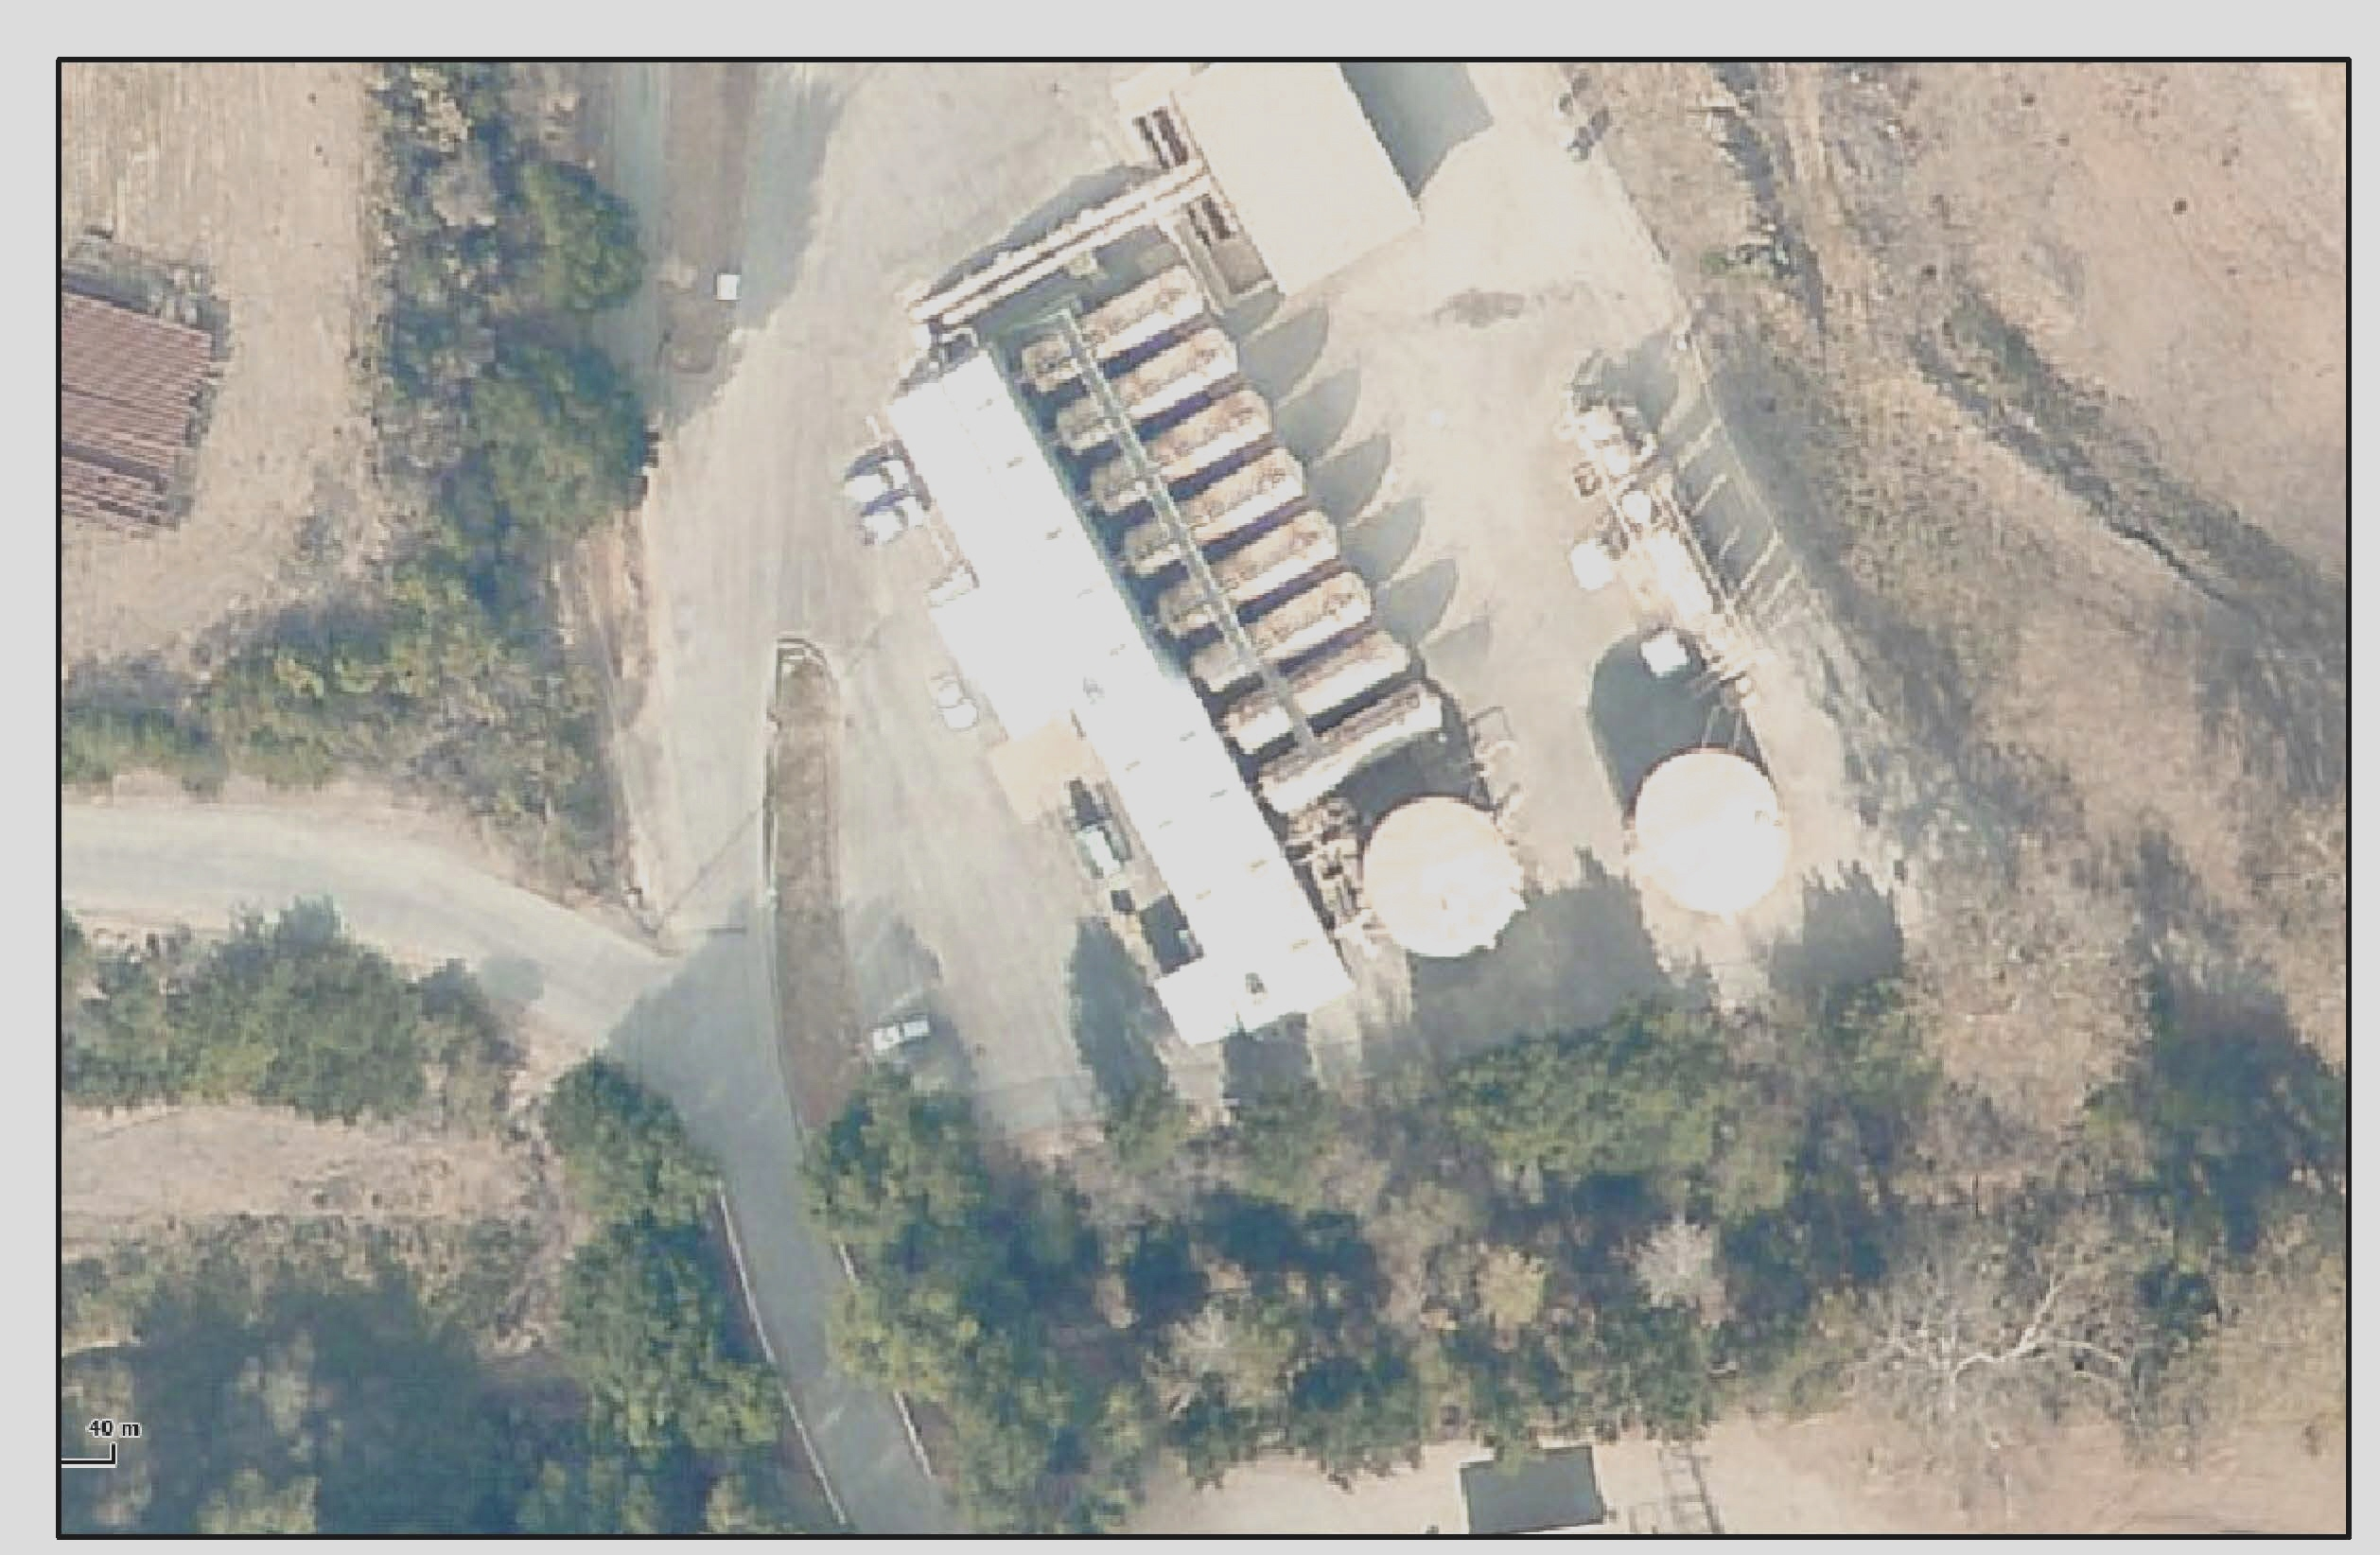 Treatment Plant Aerial